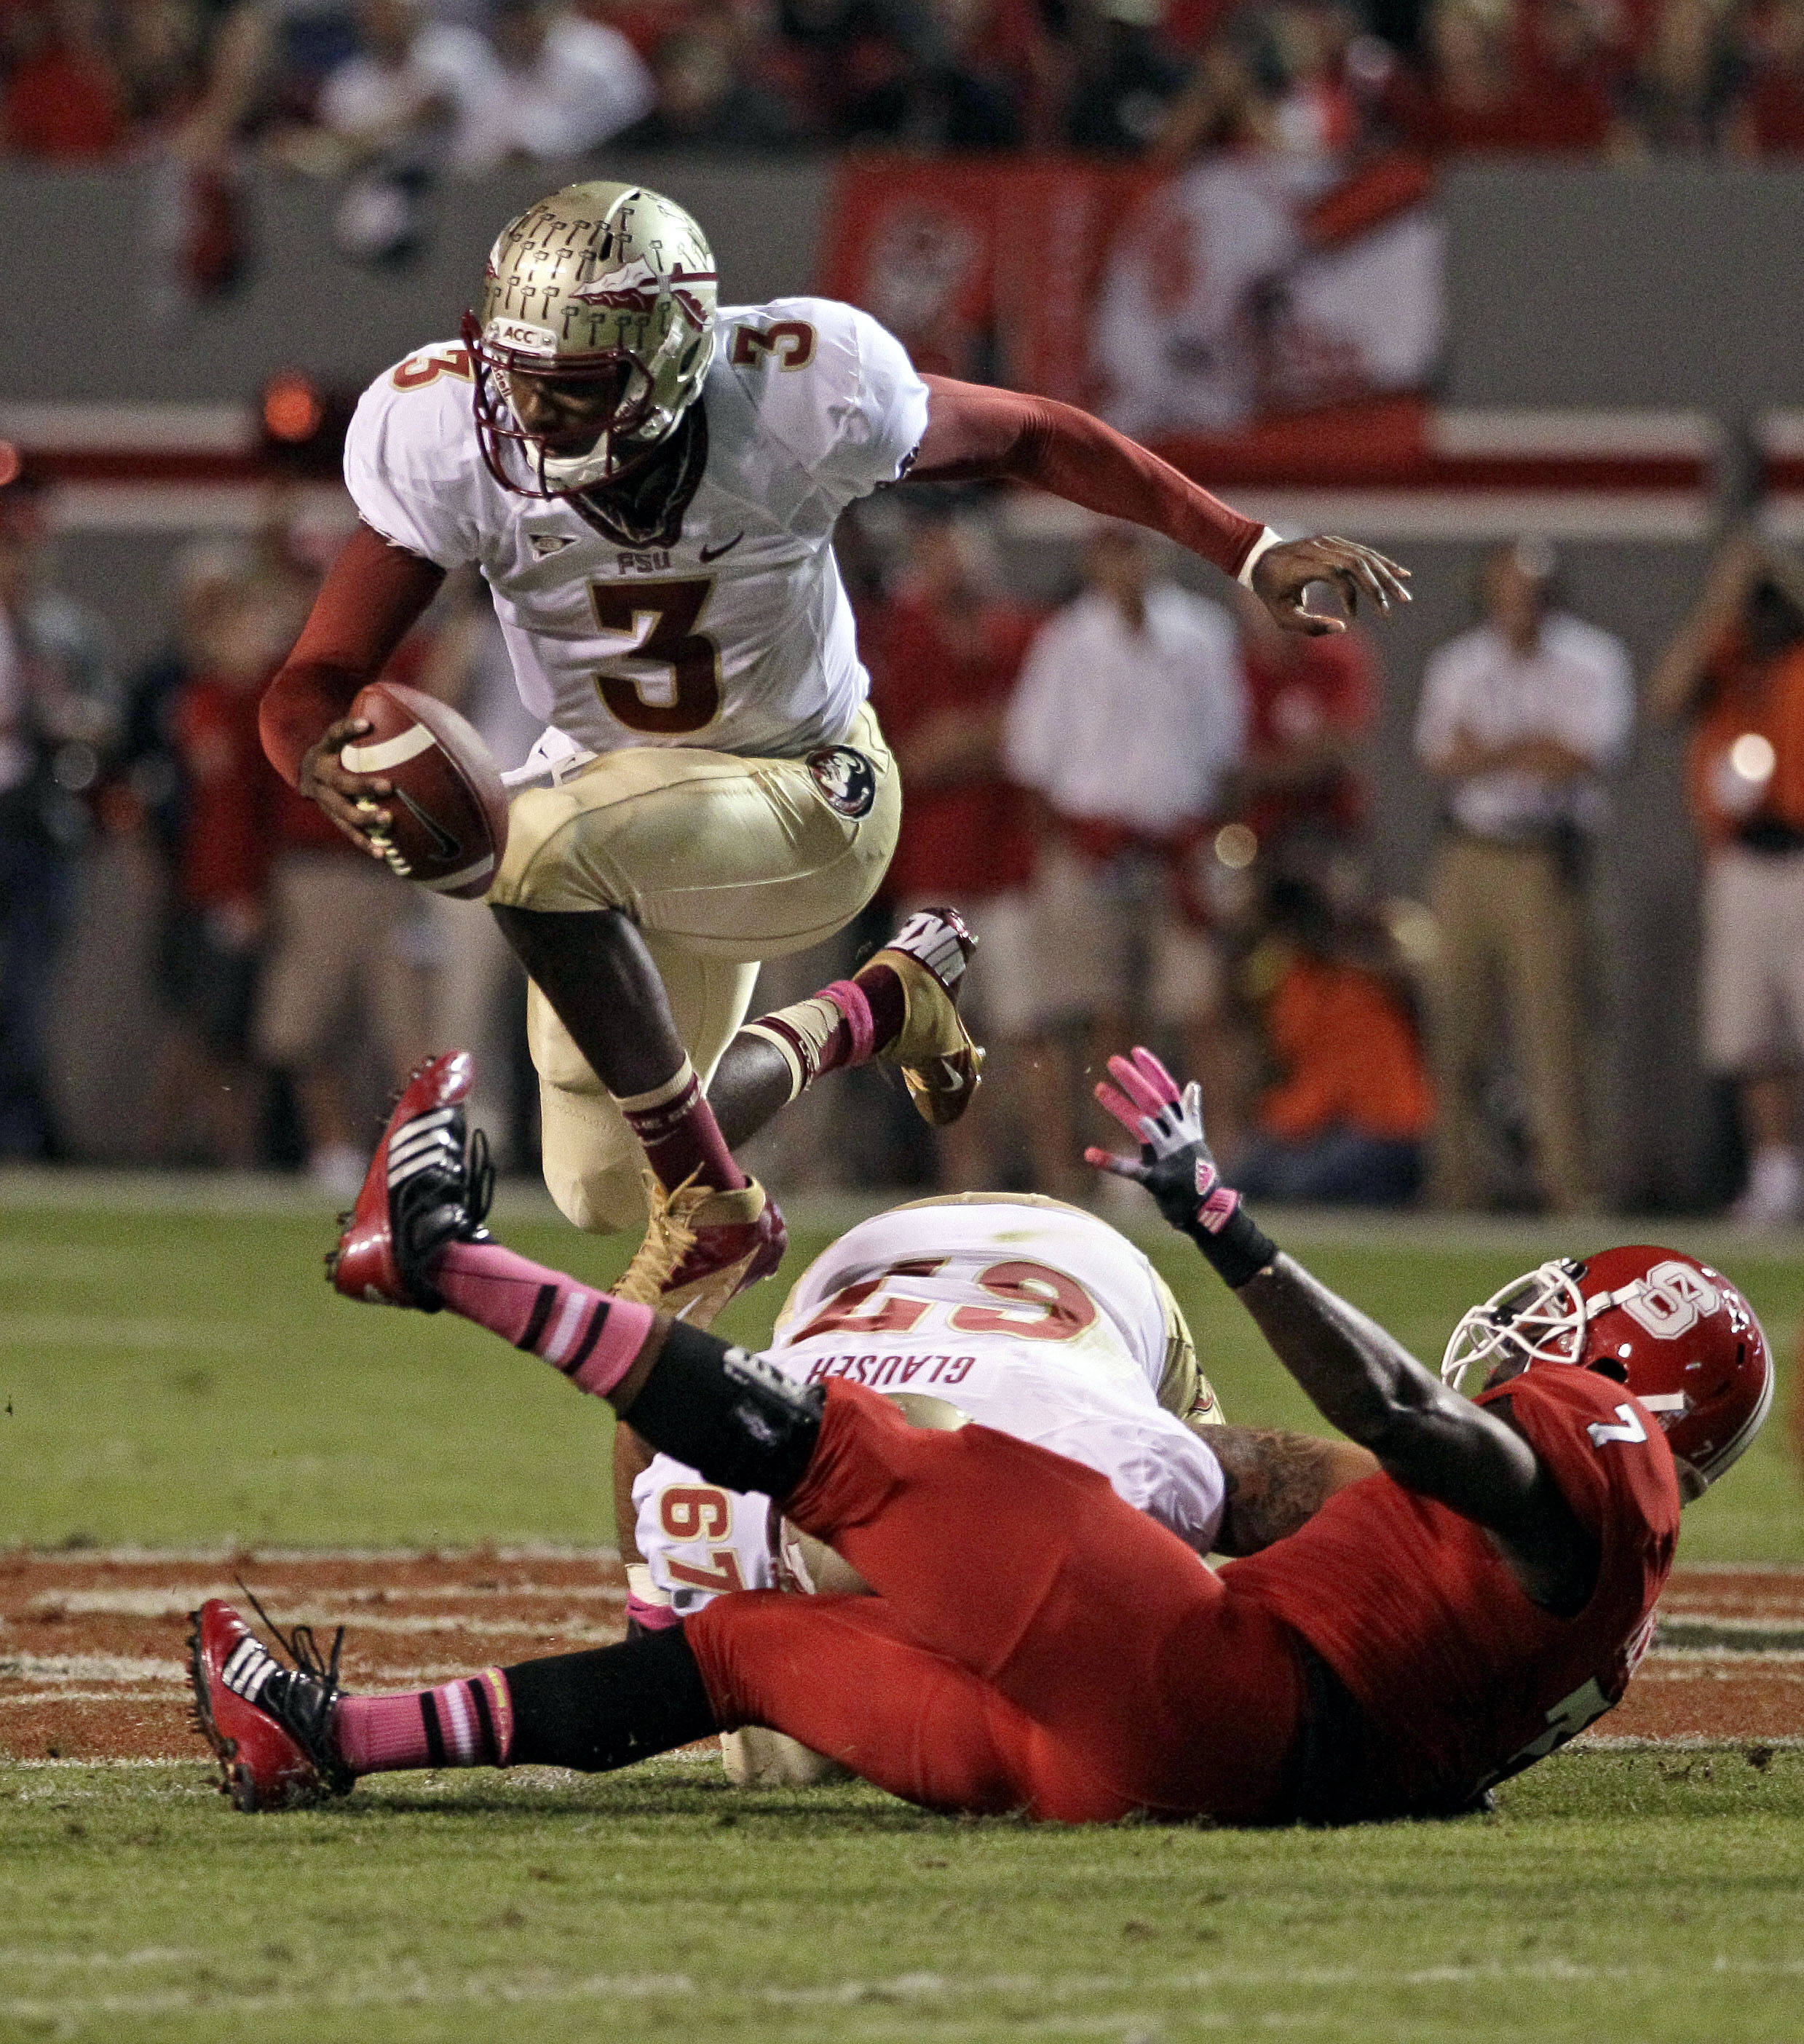 Florida State quarterback EJ Manuel (3) jumps over North Carolina State's Sterling Lucas (7). (AP Photo/Gerry Broome)